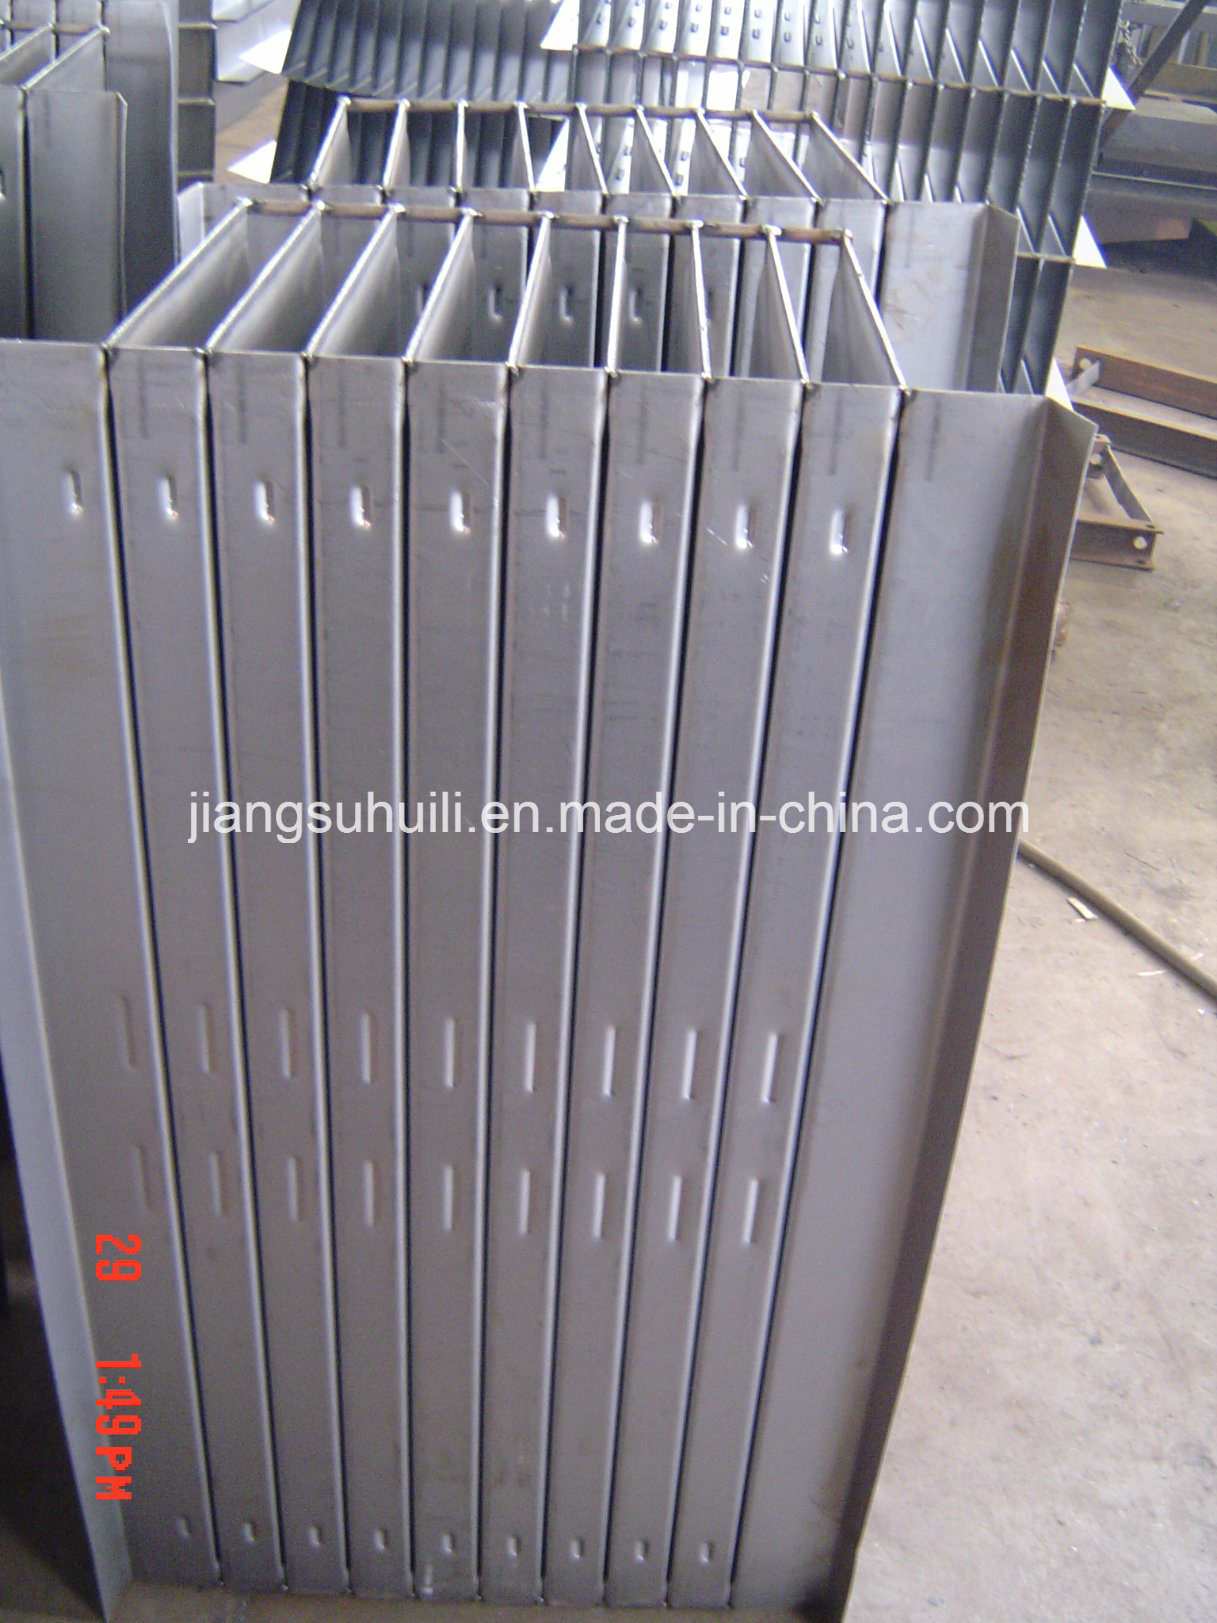 Raw Material Currugated Fin Wall